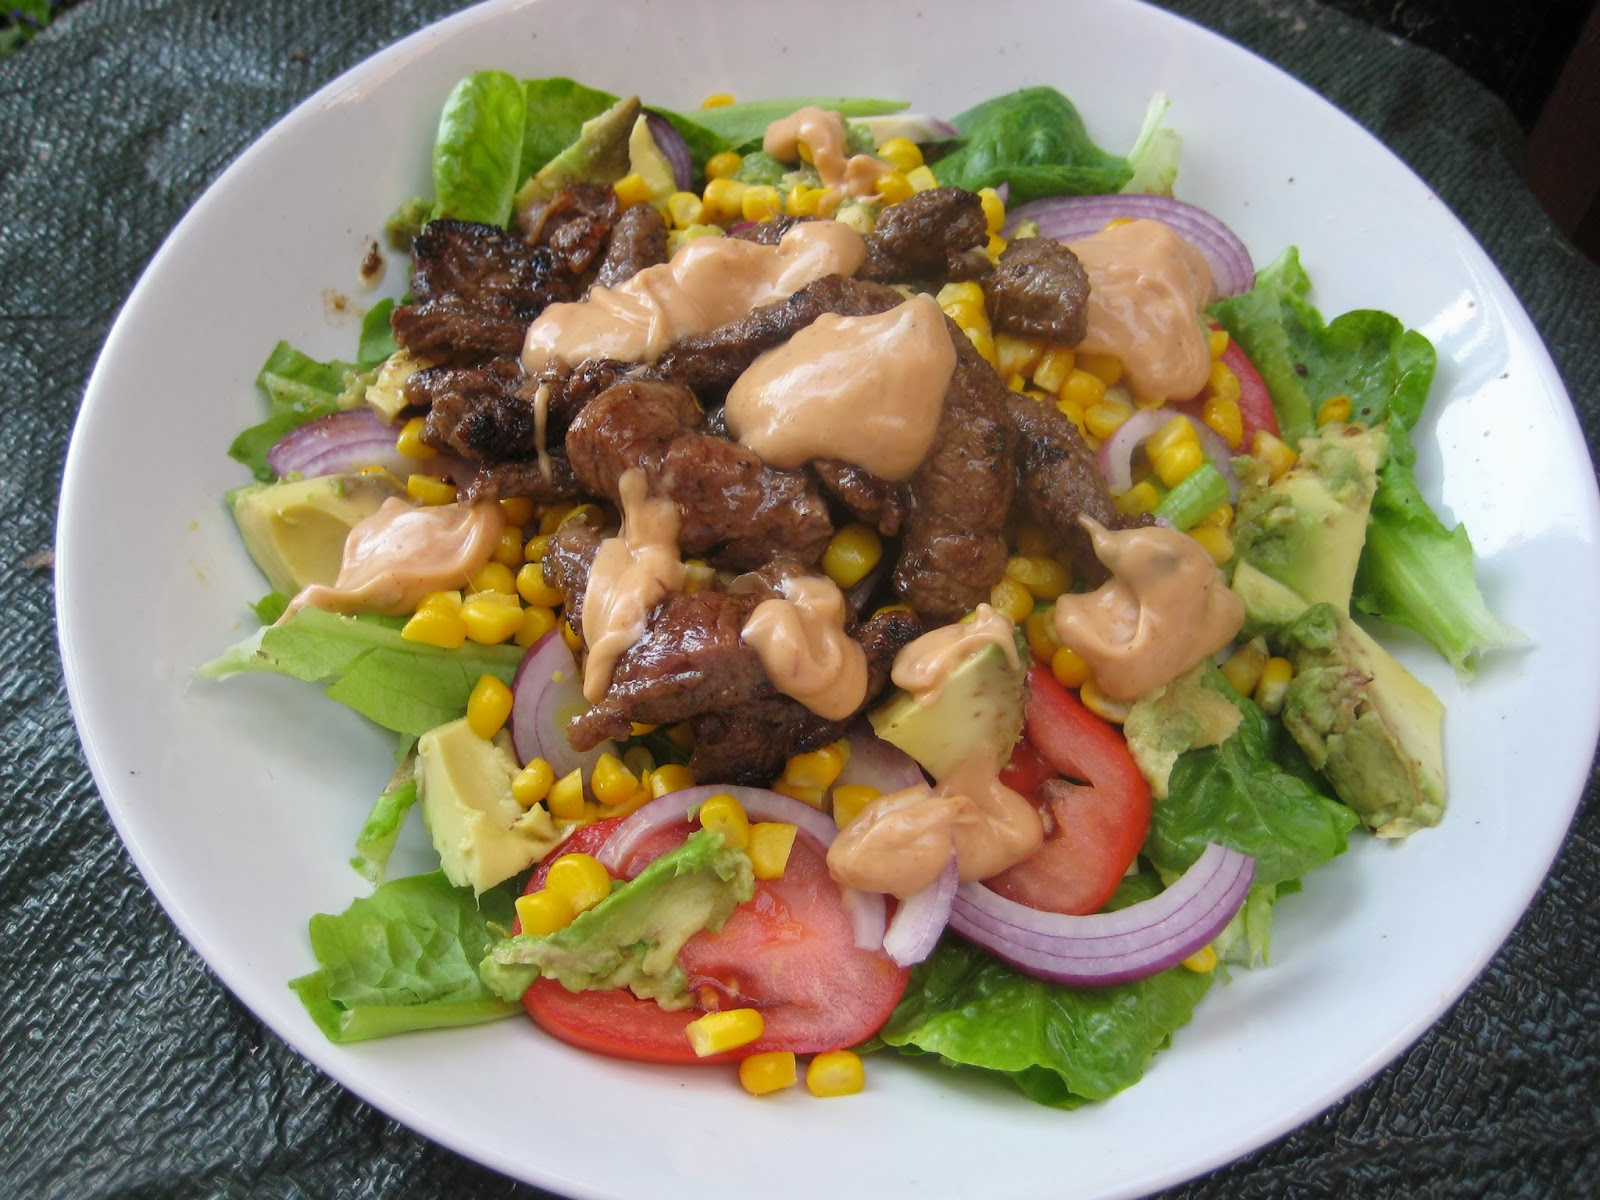 Lemon and Cheese: Chipotle Steak Salad